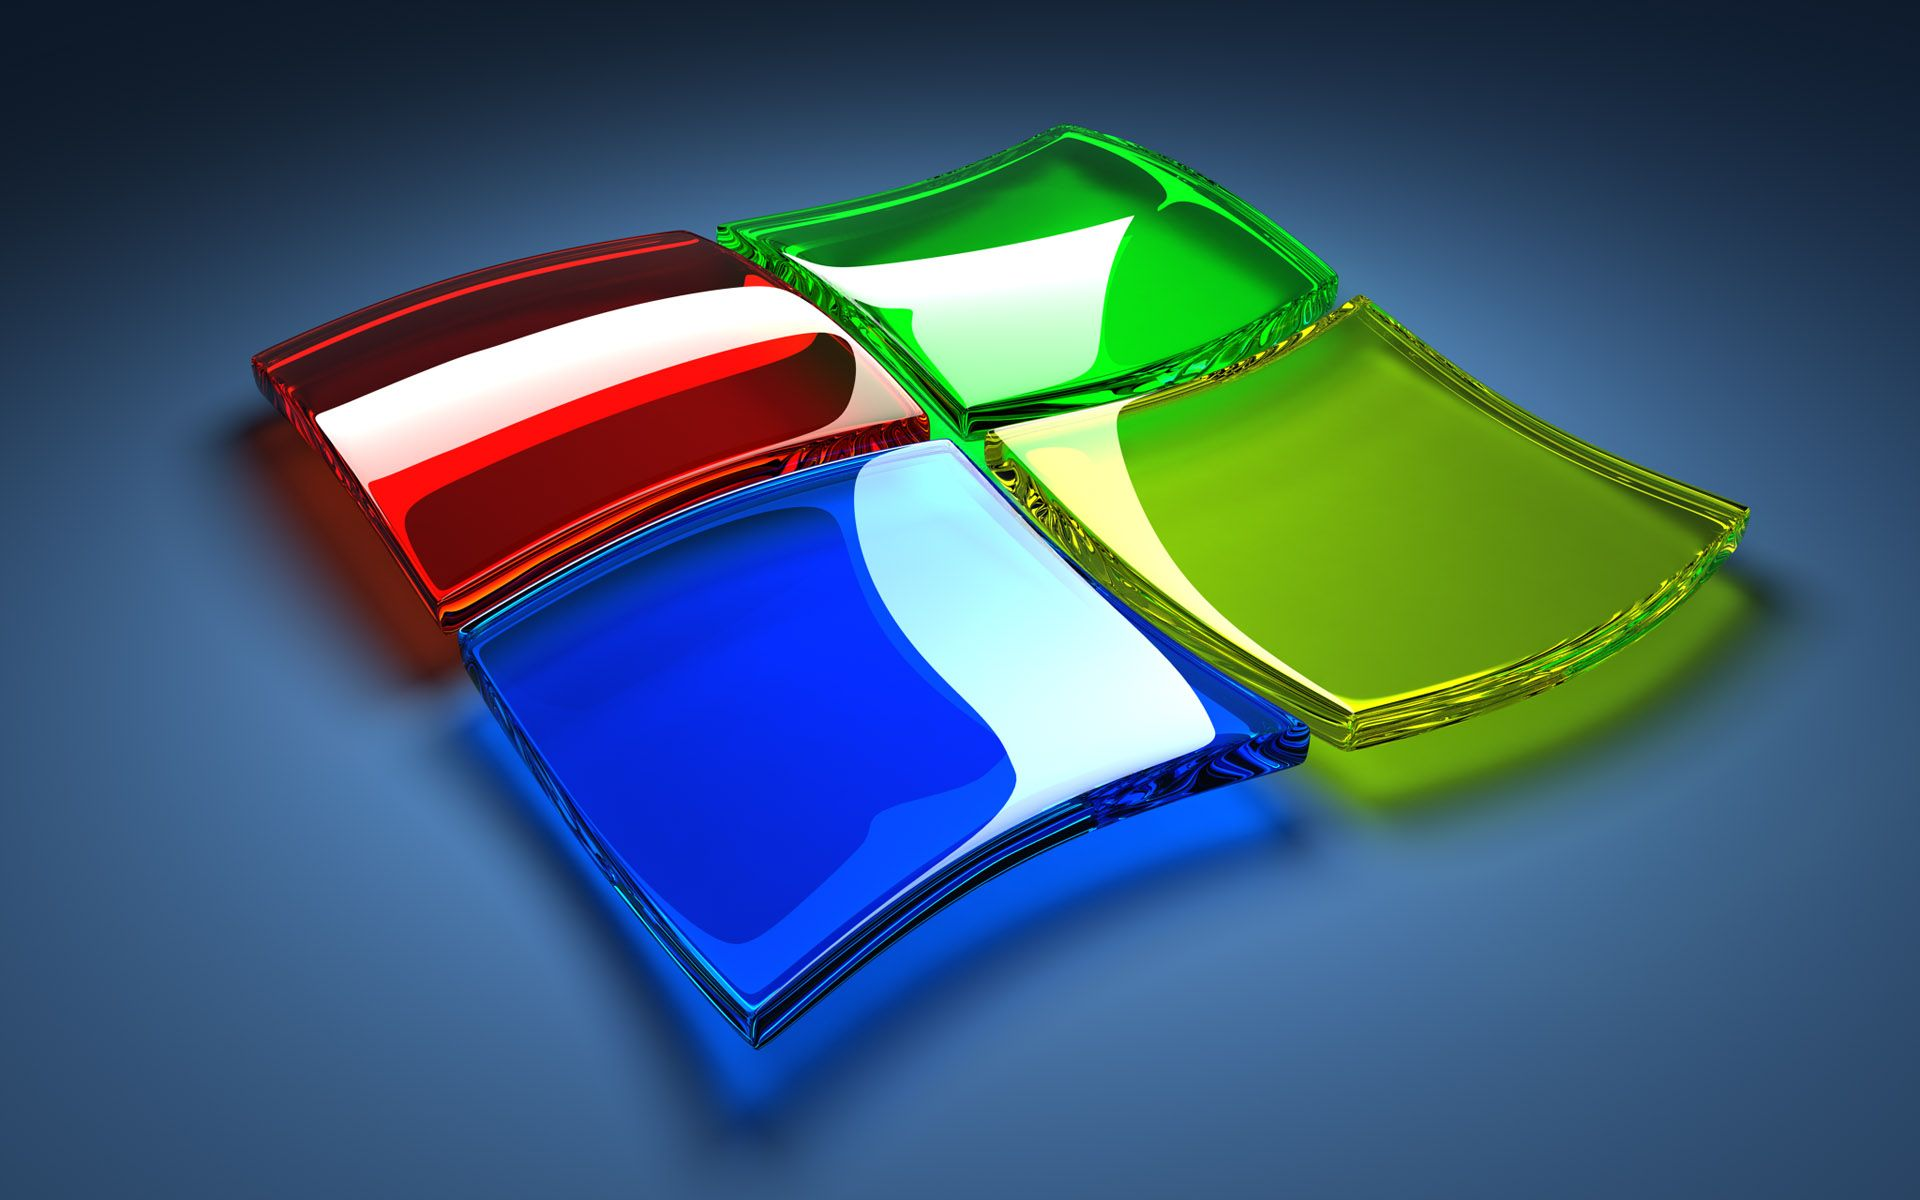 free 3d animated desktop wallpaper for windows 7 u2013 free